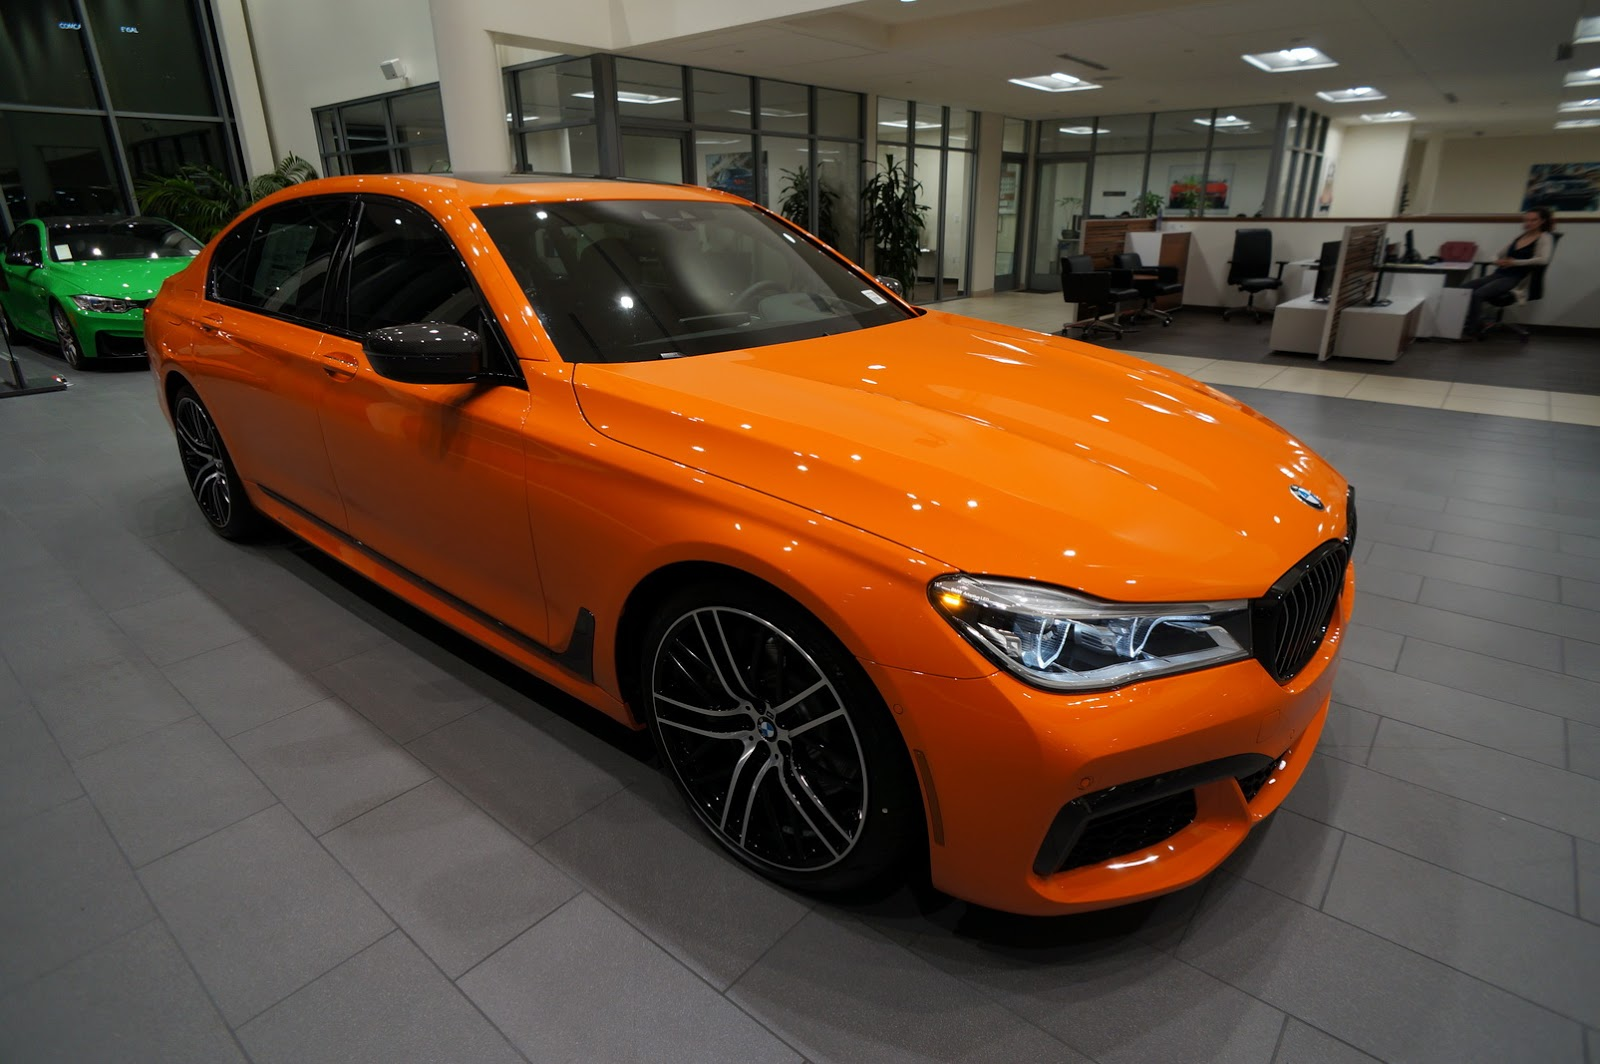 BMW_750i_Fire_Orange_26